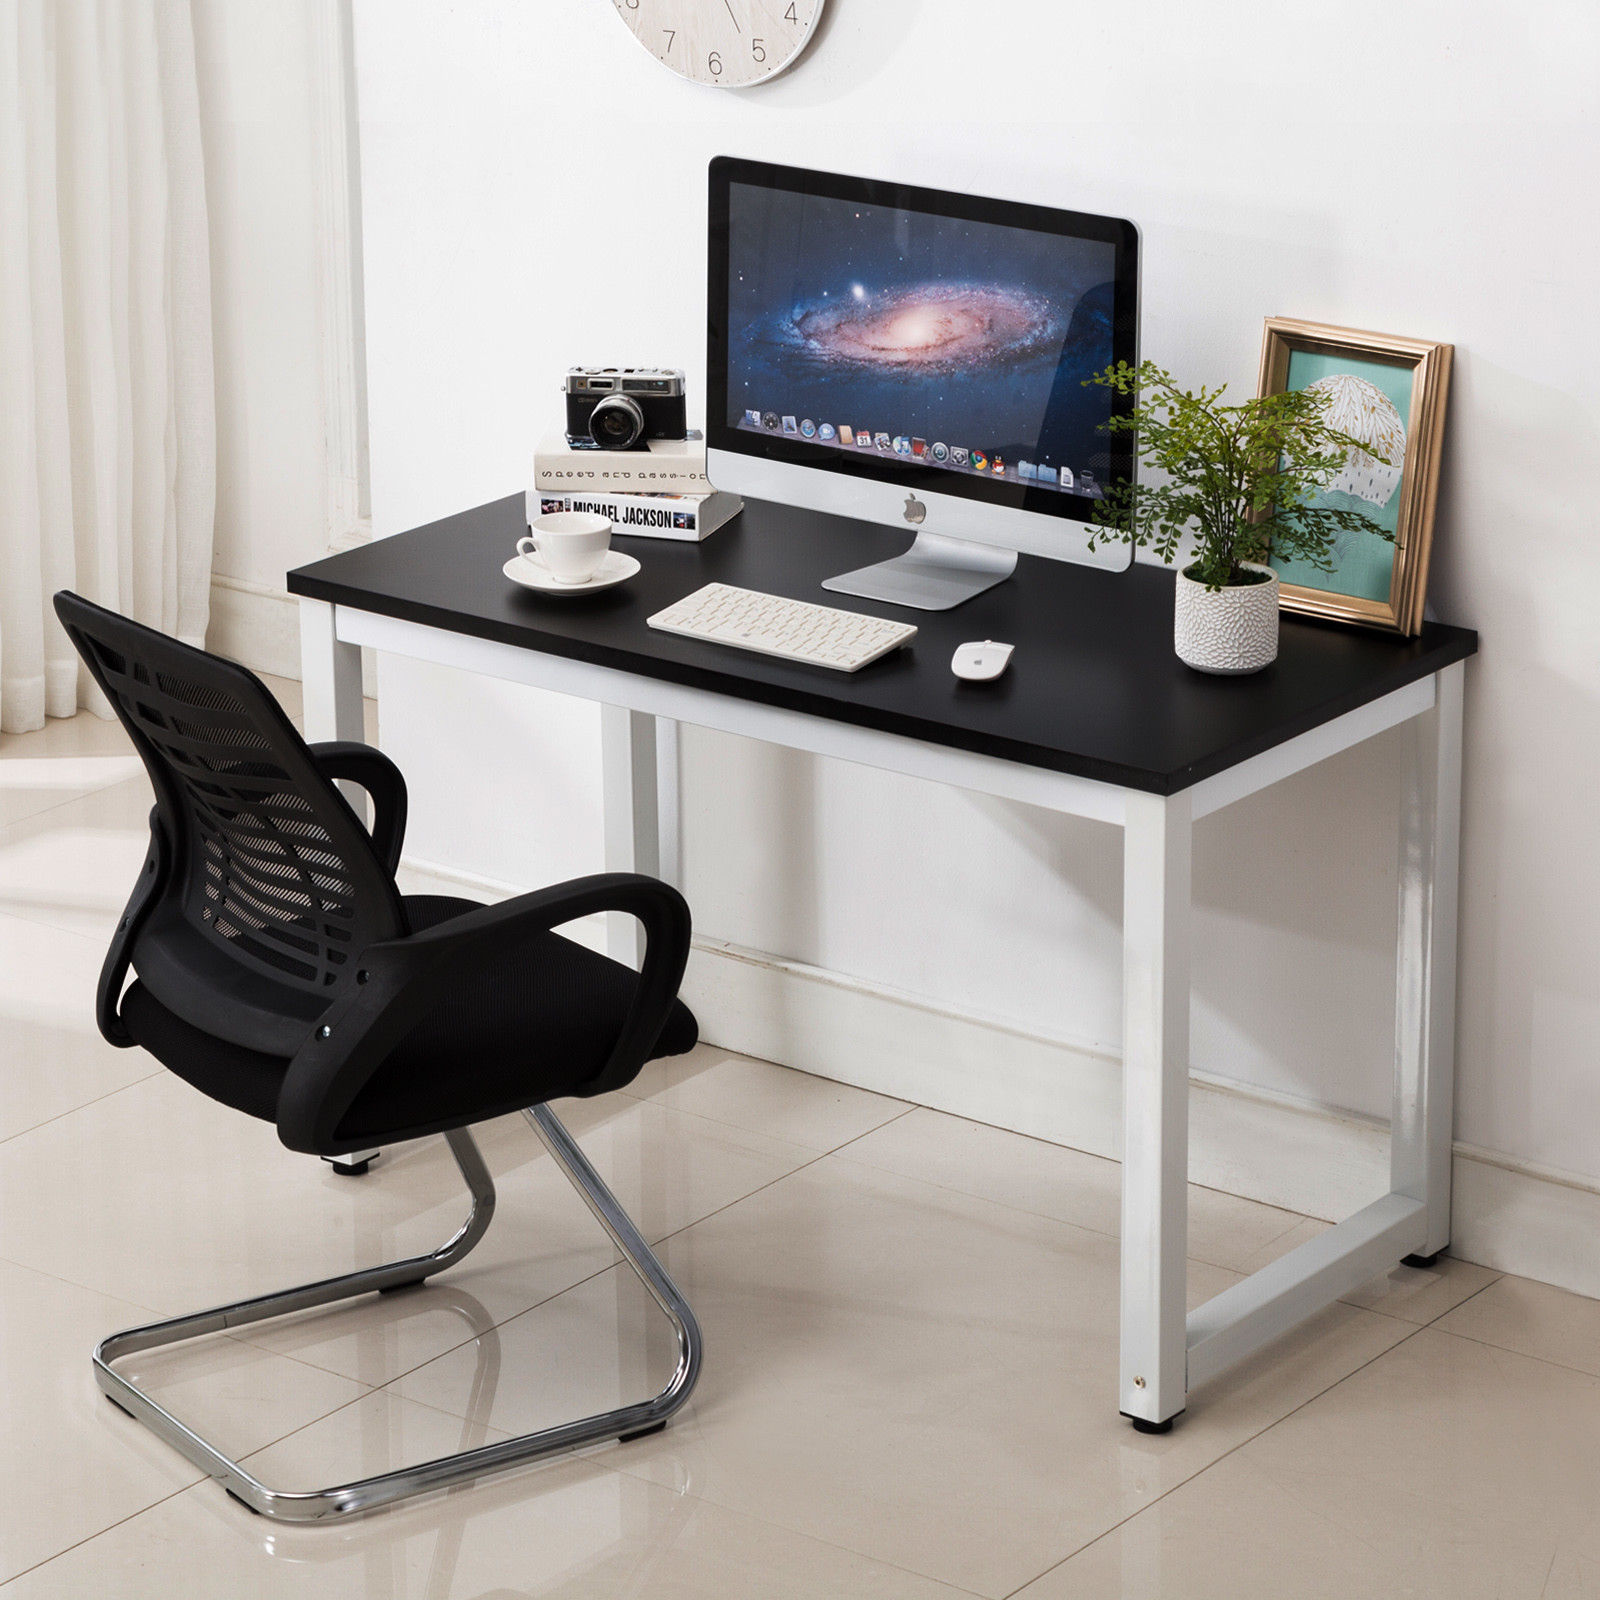 Workstation Furniture Details About Computer Desk Pc Laptop Table Writing Workstation Home Office Furniture Black